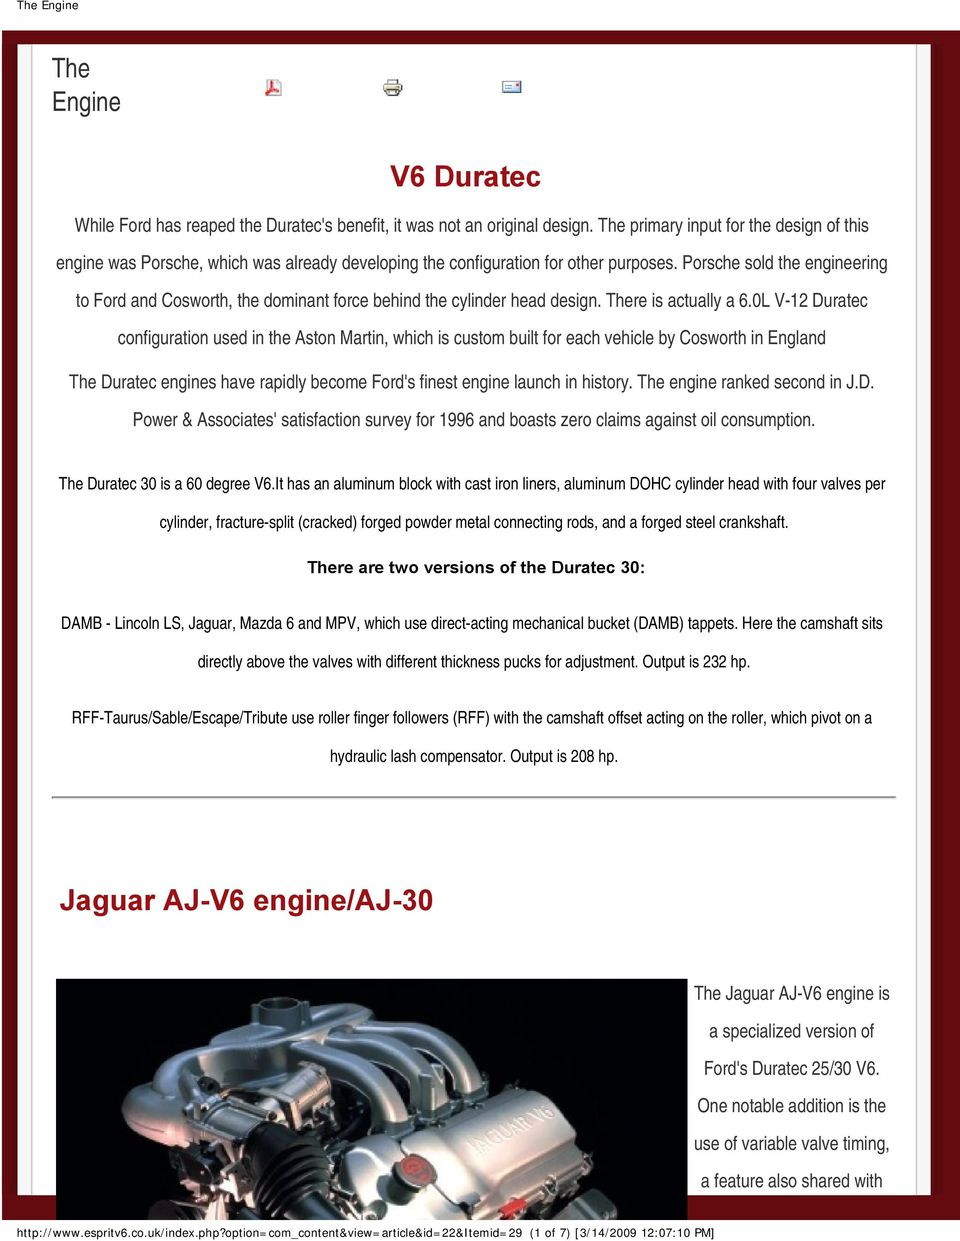 V6 Duratec Jaguar Aj Engine 30 The Pdf 3 0 Ford Assembly Diagram Porsche Sold Engineering To And Cosworth Dominant Force Behind Cylinder Head